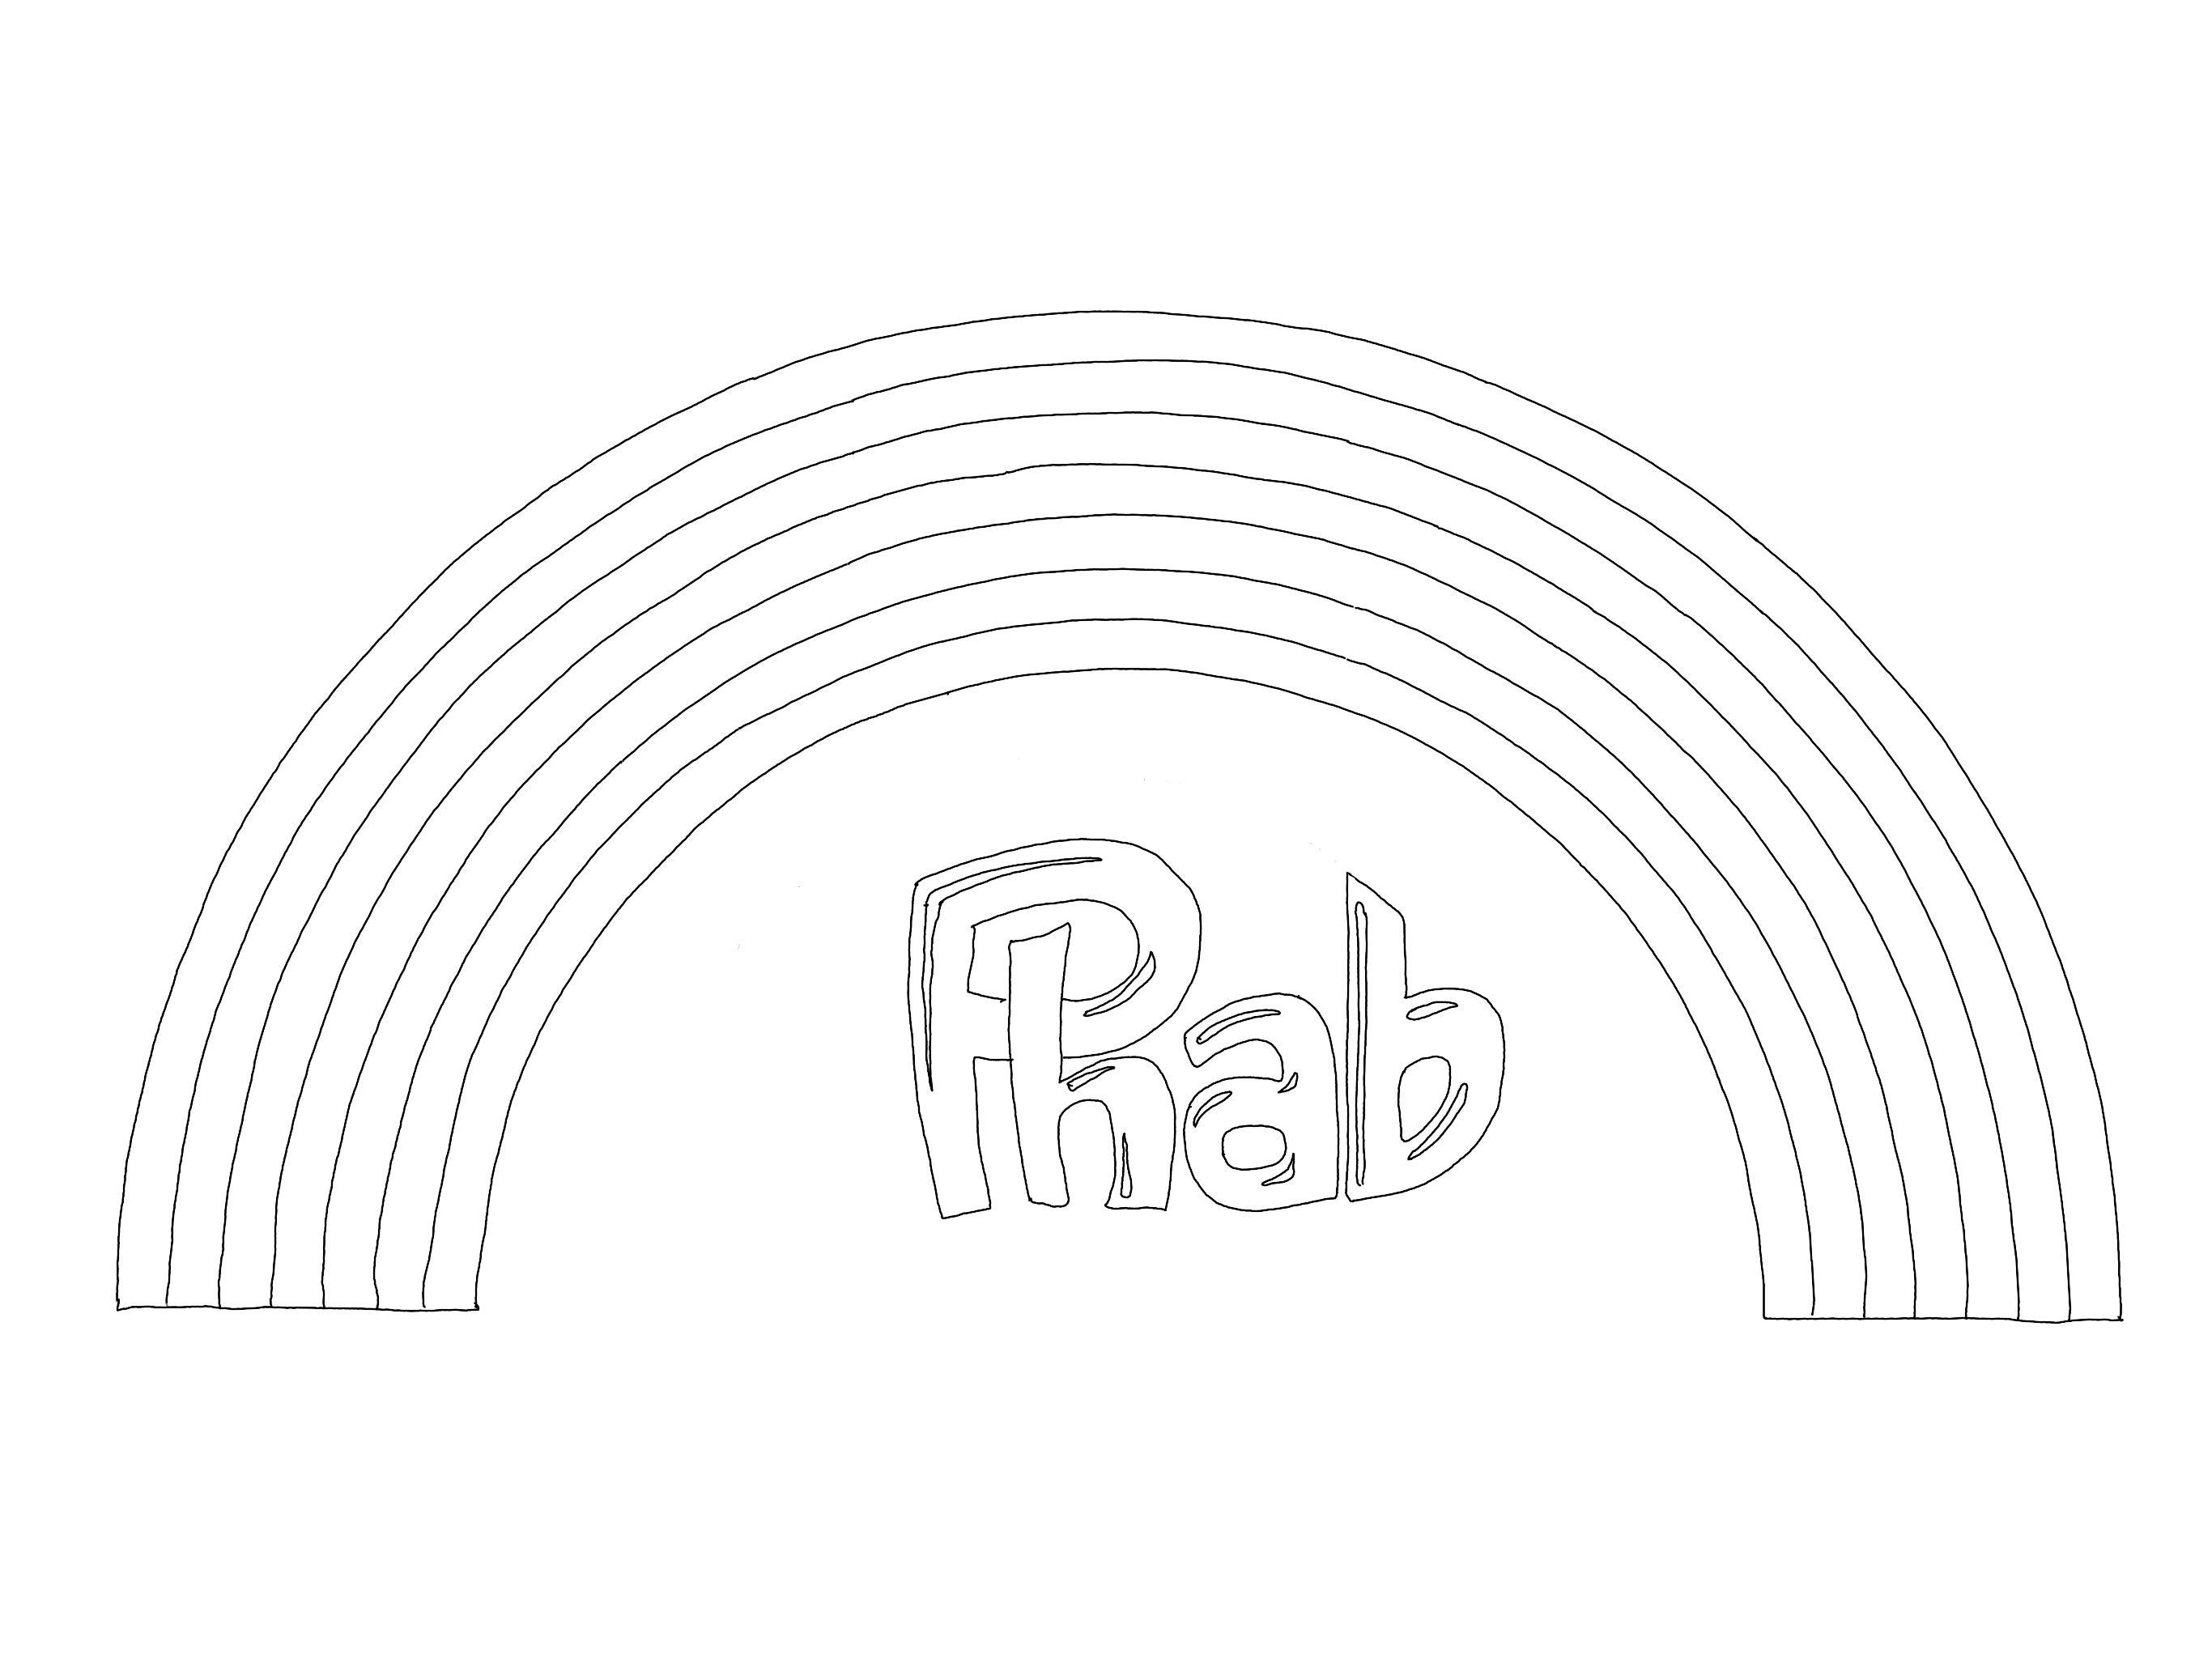 Phab all club rainbow